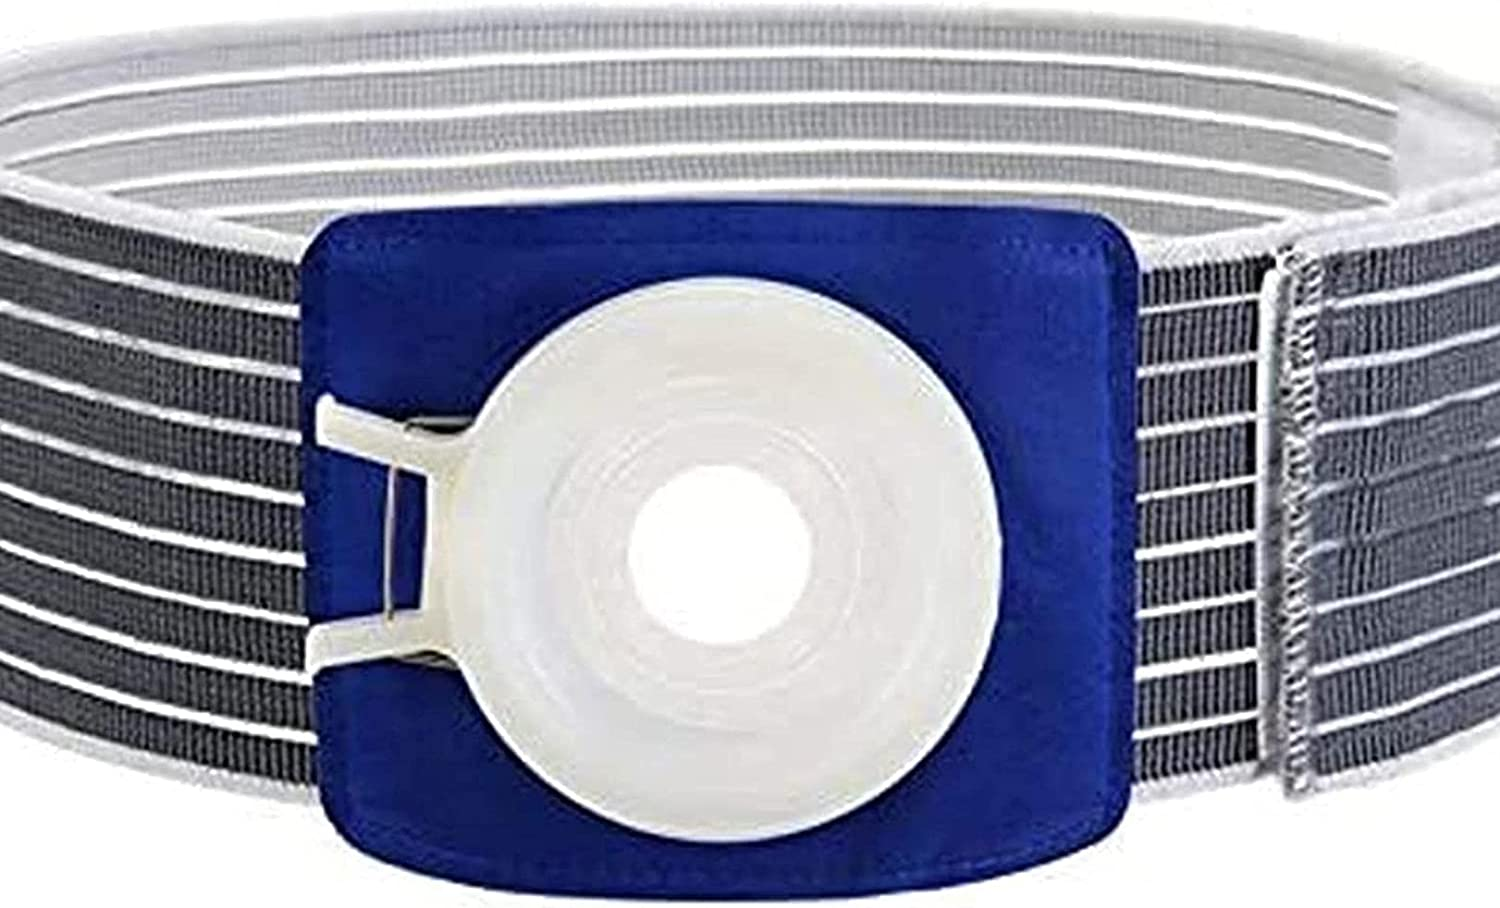 Xkun Support Belt Outlet SALE Used for Care postoperative Anal Elas Memphis Mall Surgery